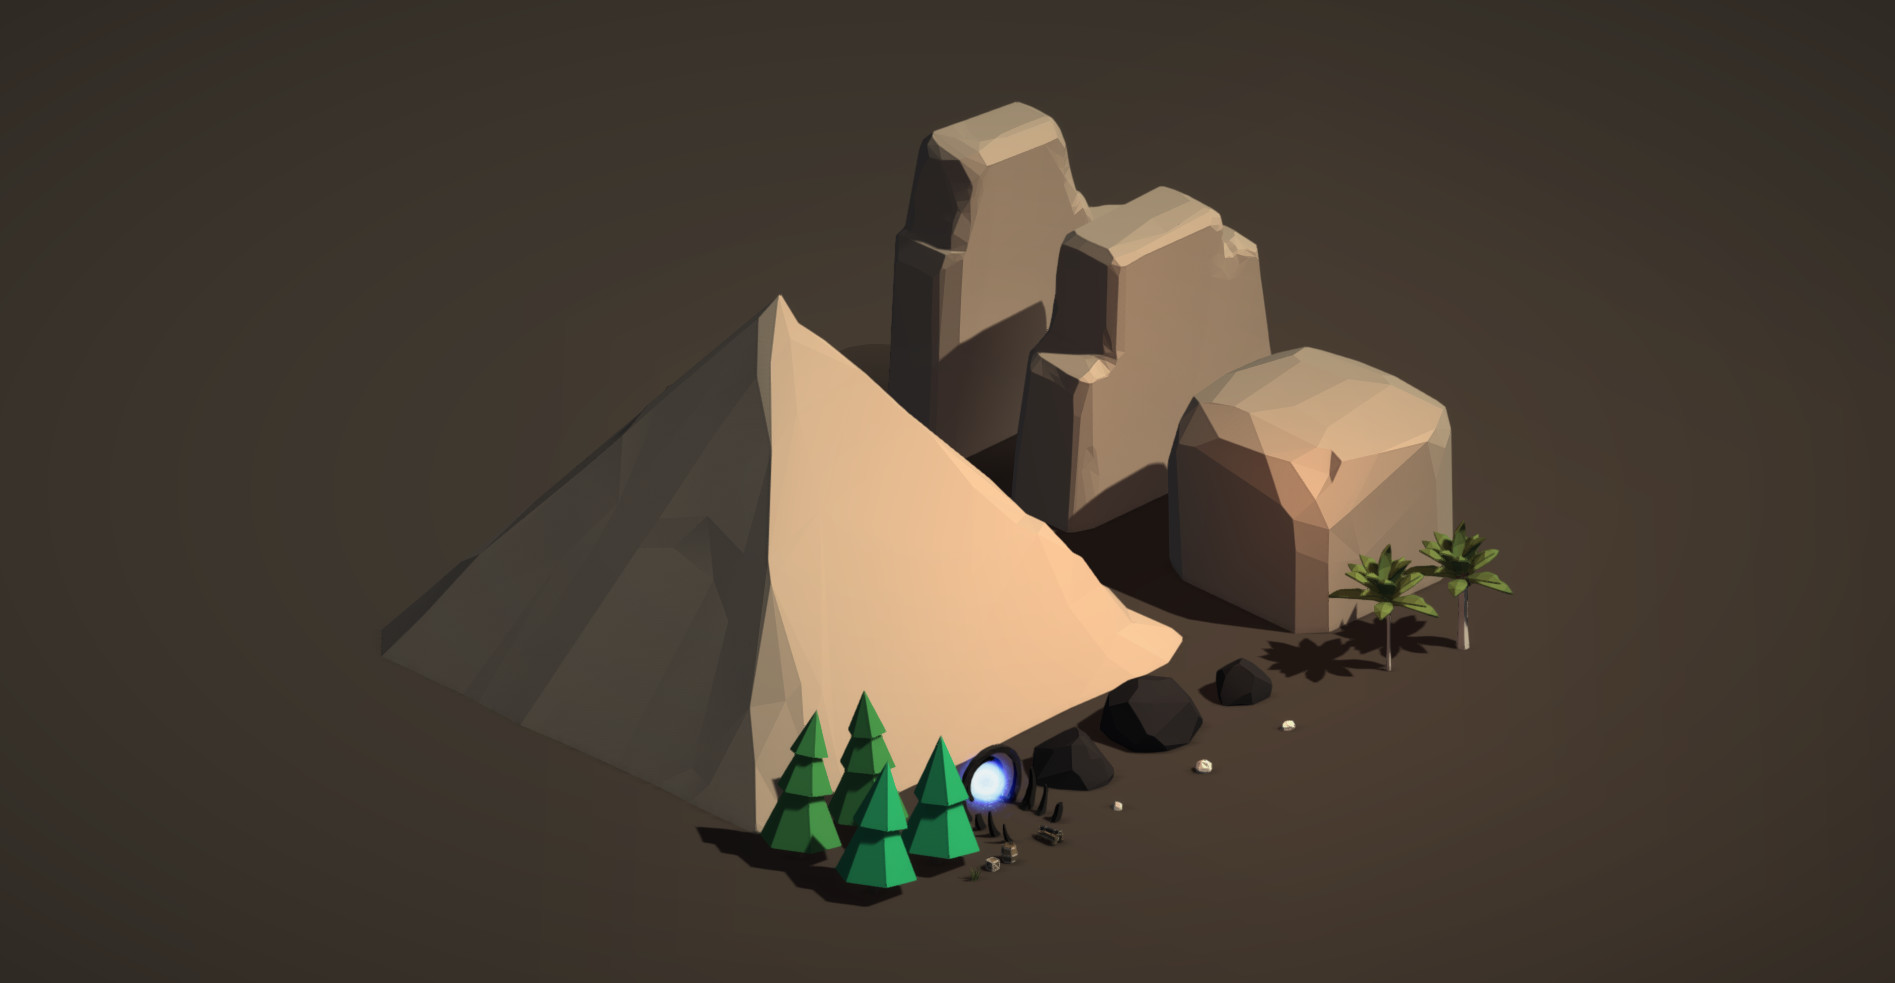 ArtStation - Low Poly Free Pack - Unity Asset Store, Tornado